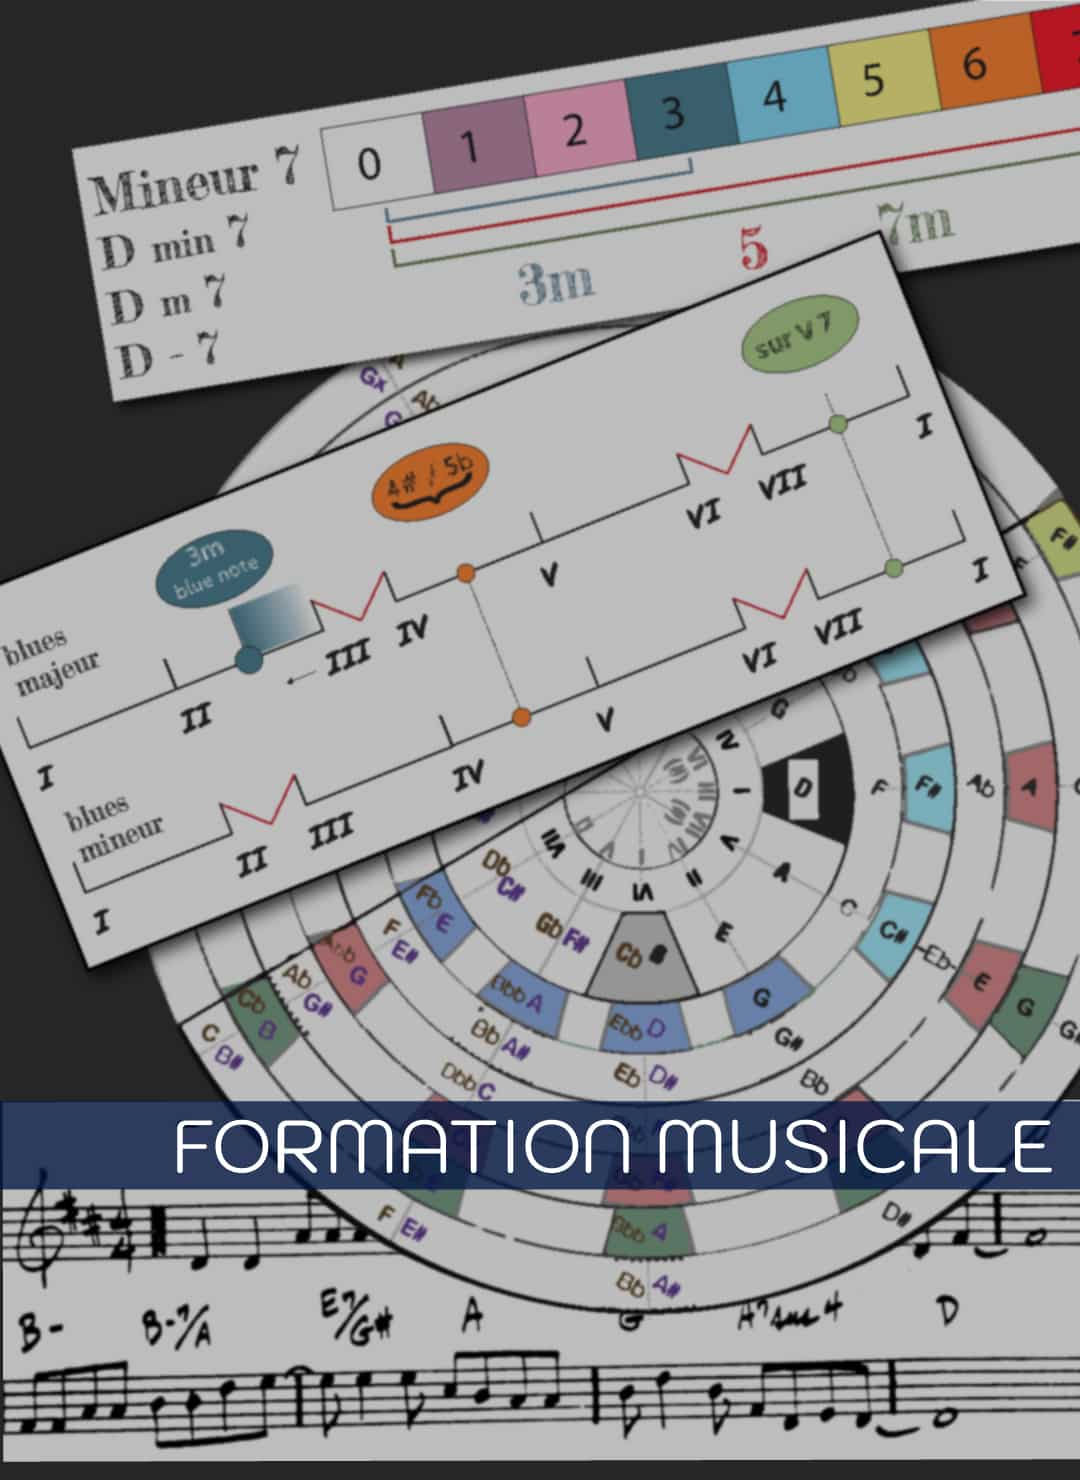 Formation musique - Formation musicale